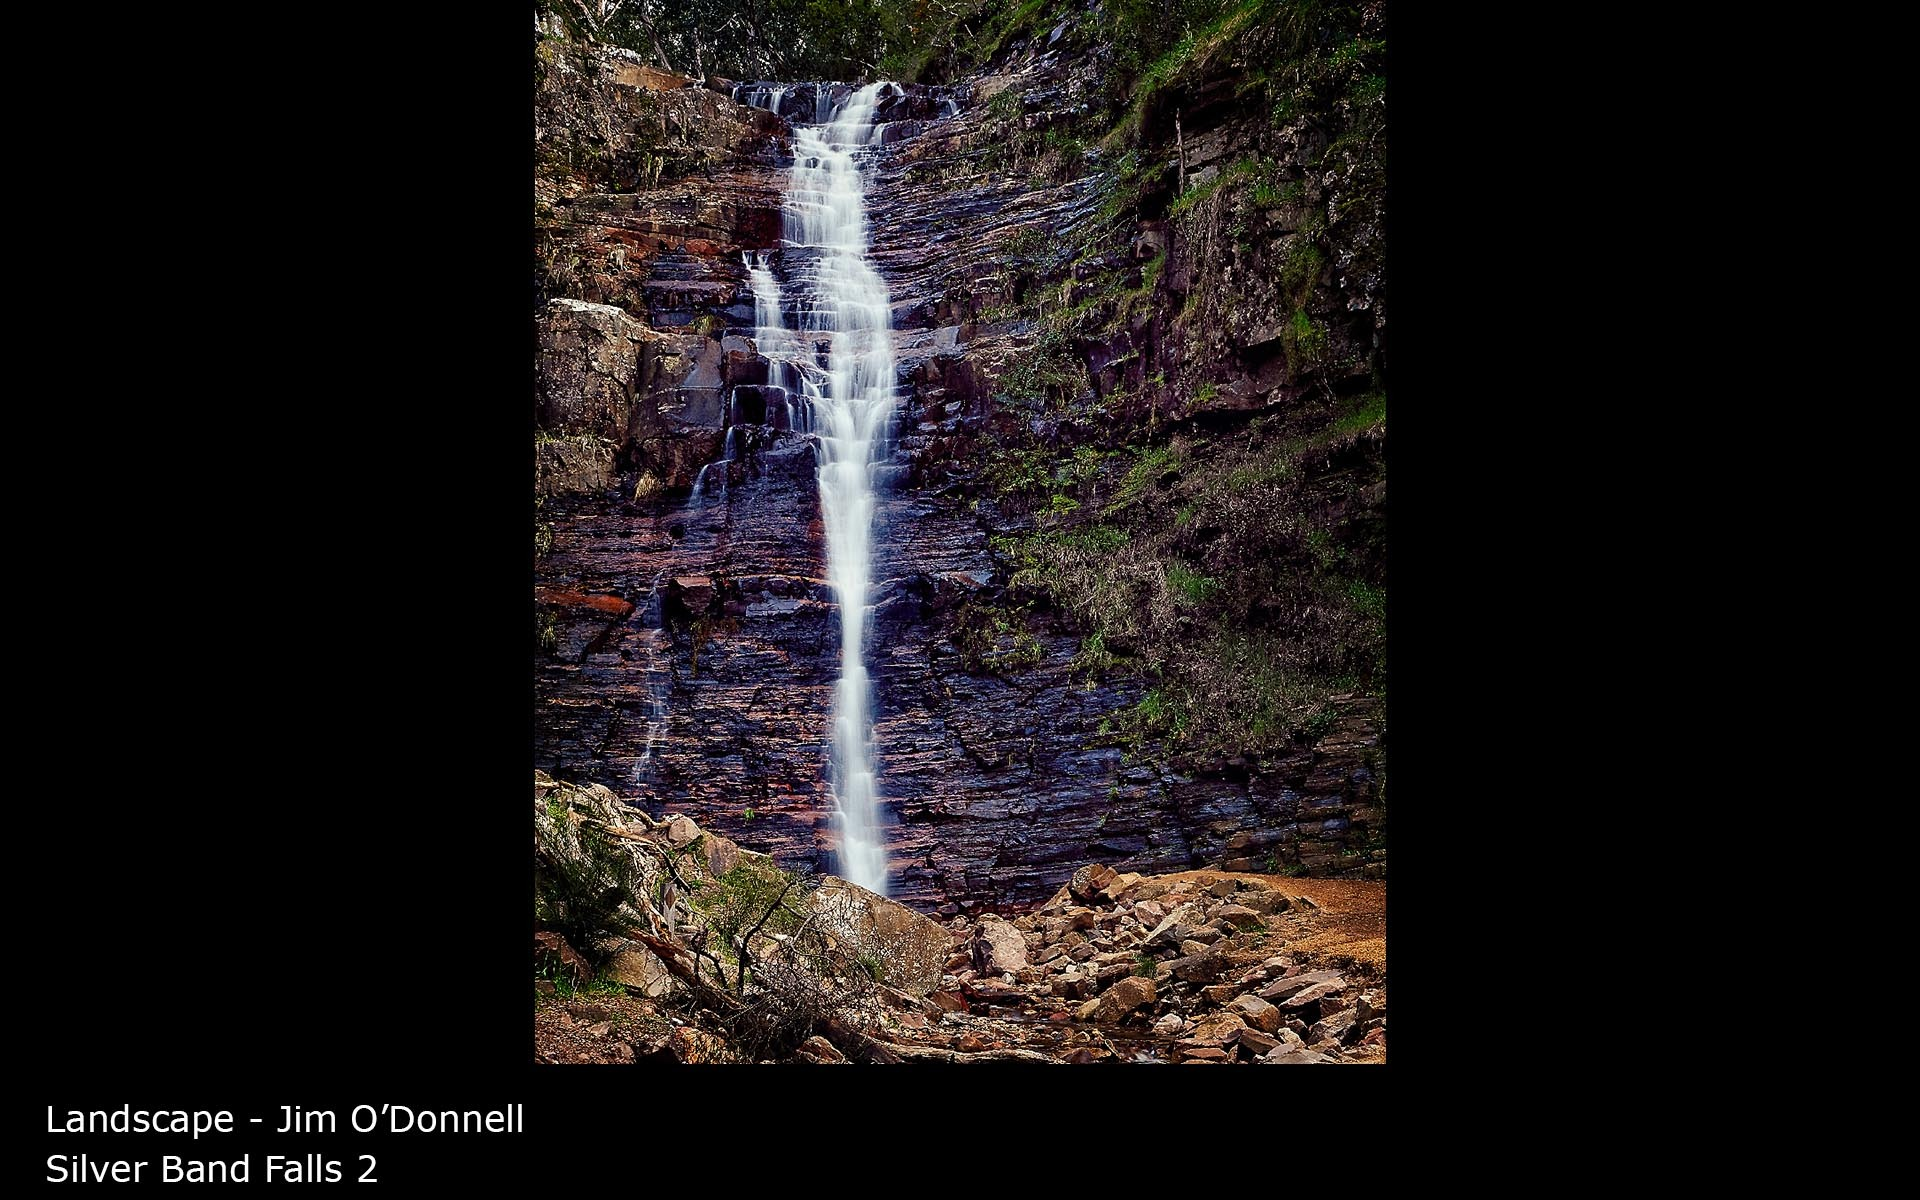 Silver Band Falls 2 - Jim O'Donnell